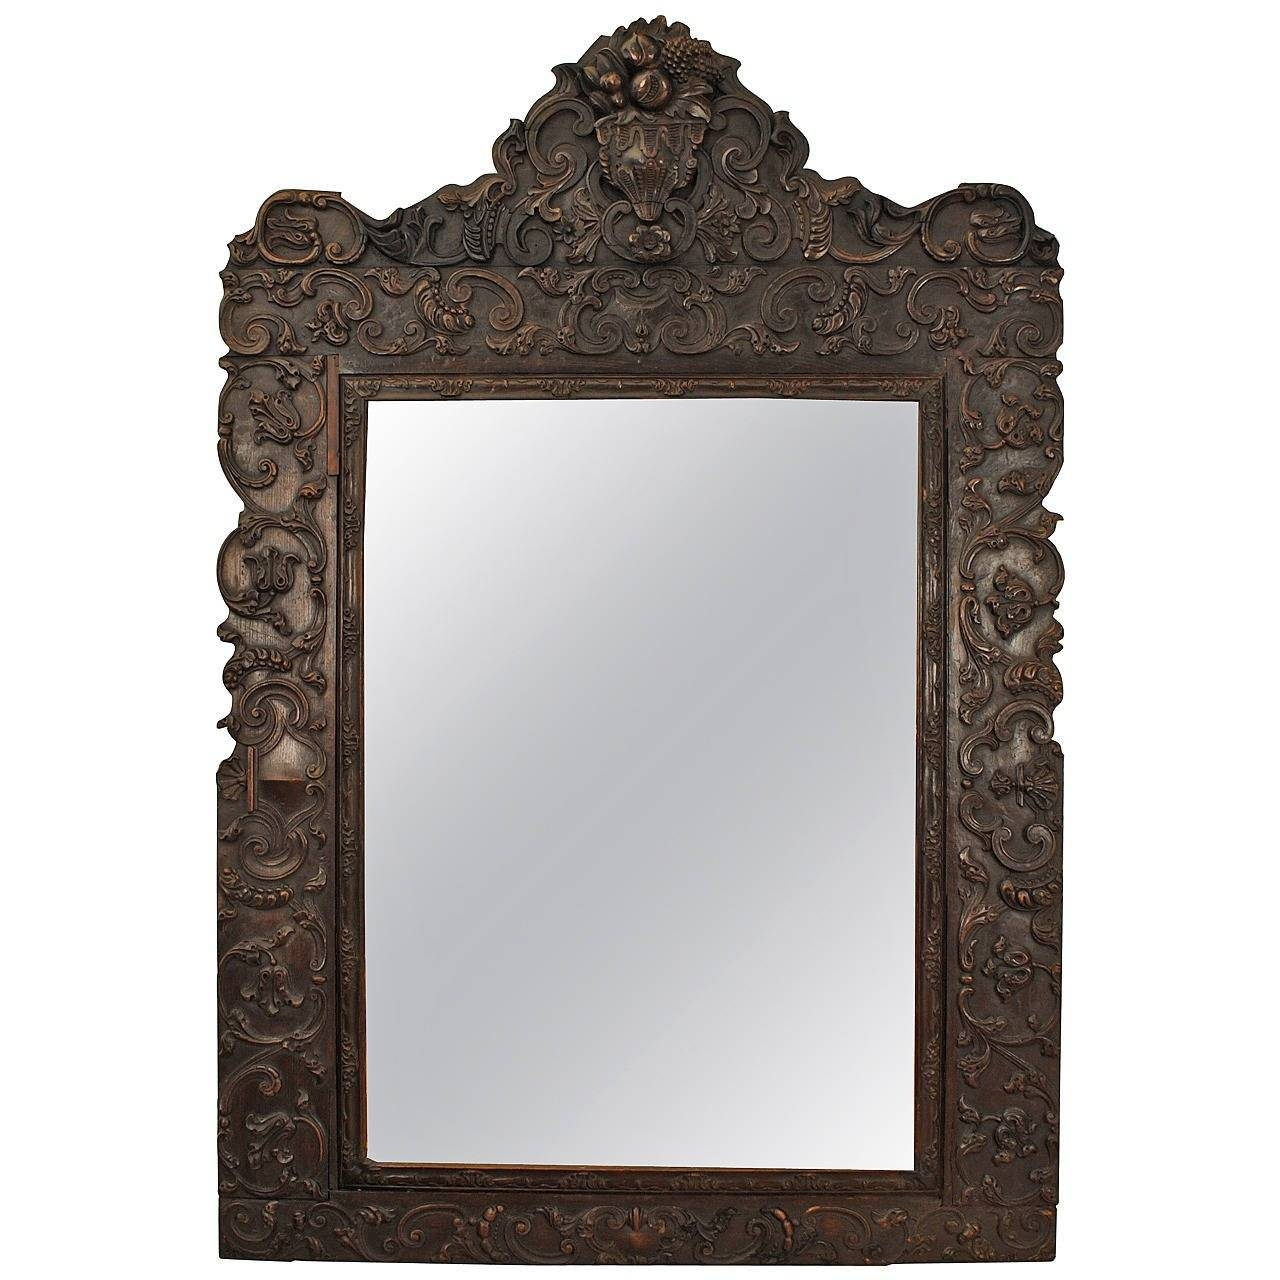 Photo Gallery of Rococo Floor Mirrors (Showing 10 of 15 Photos)